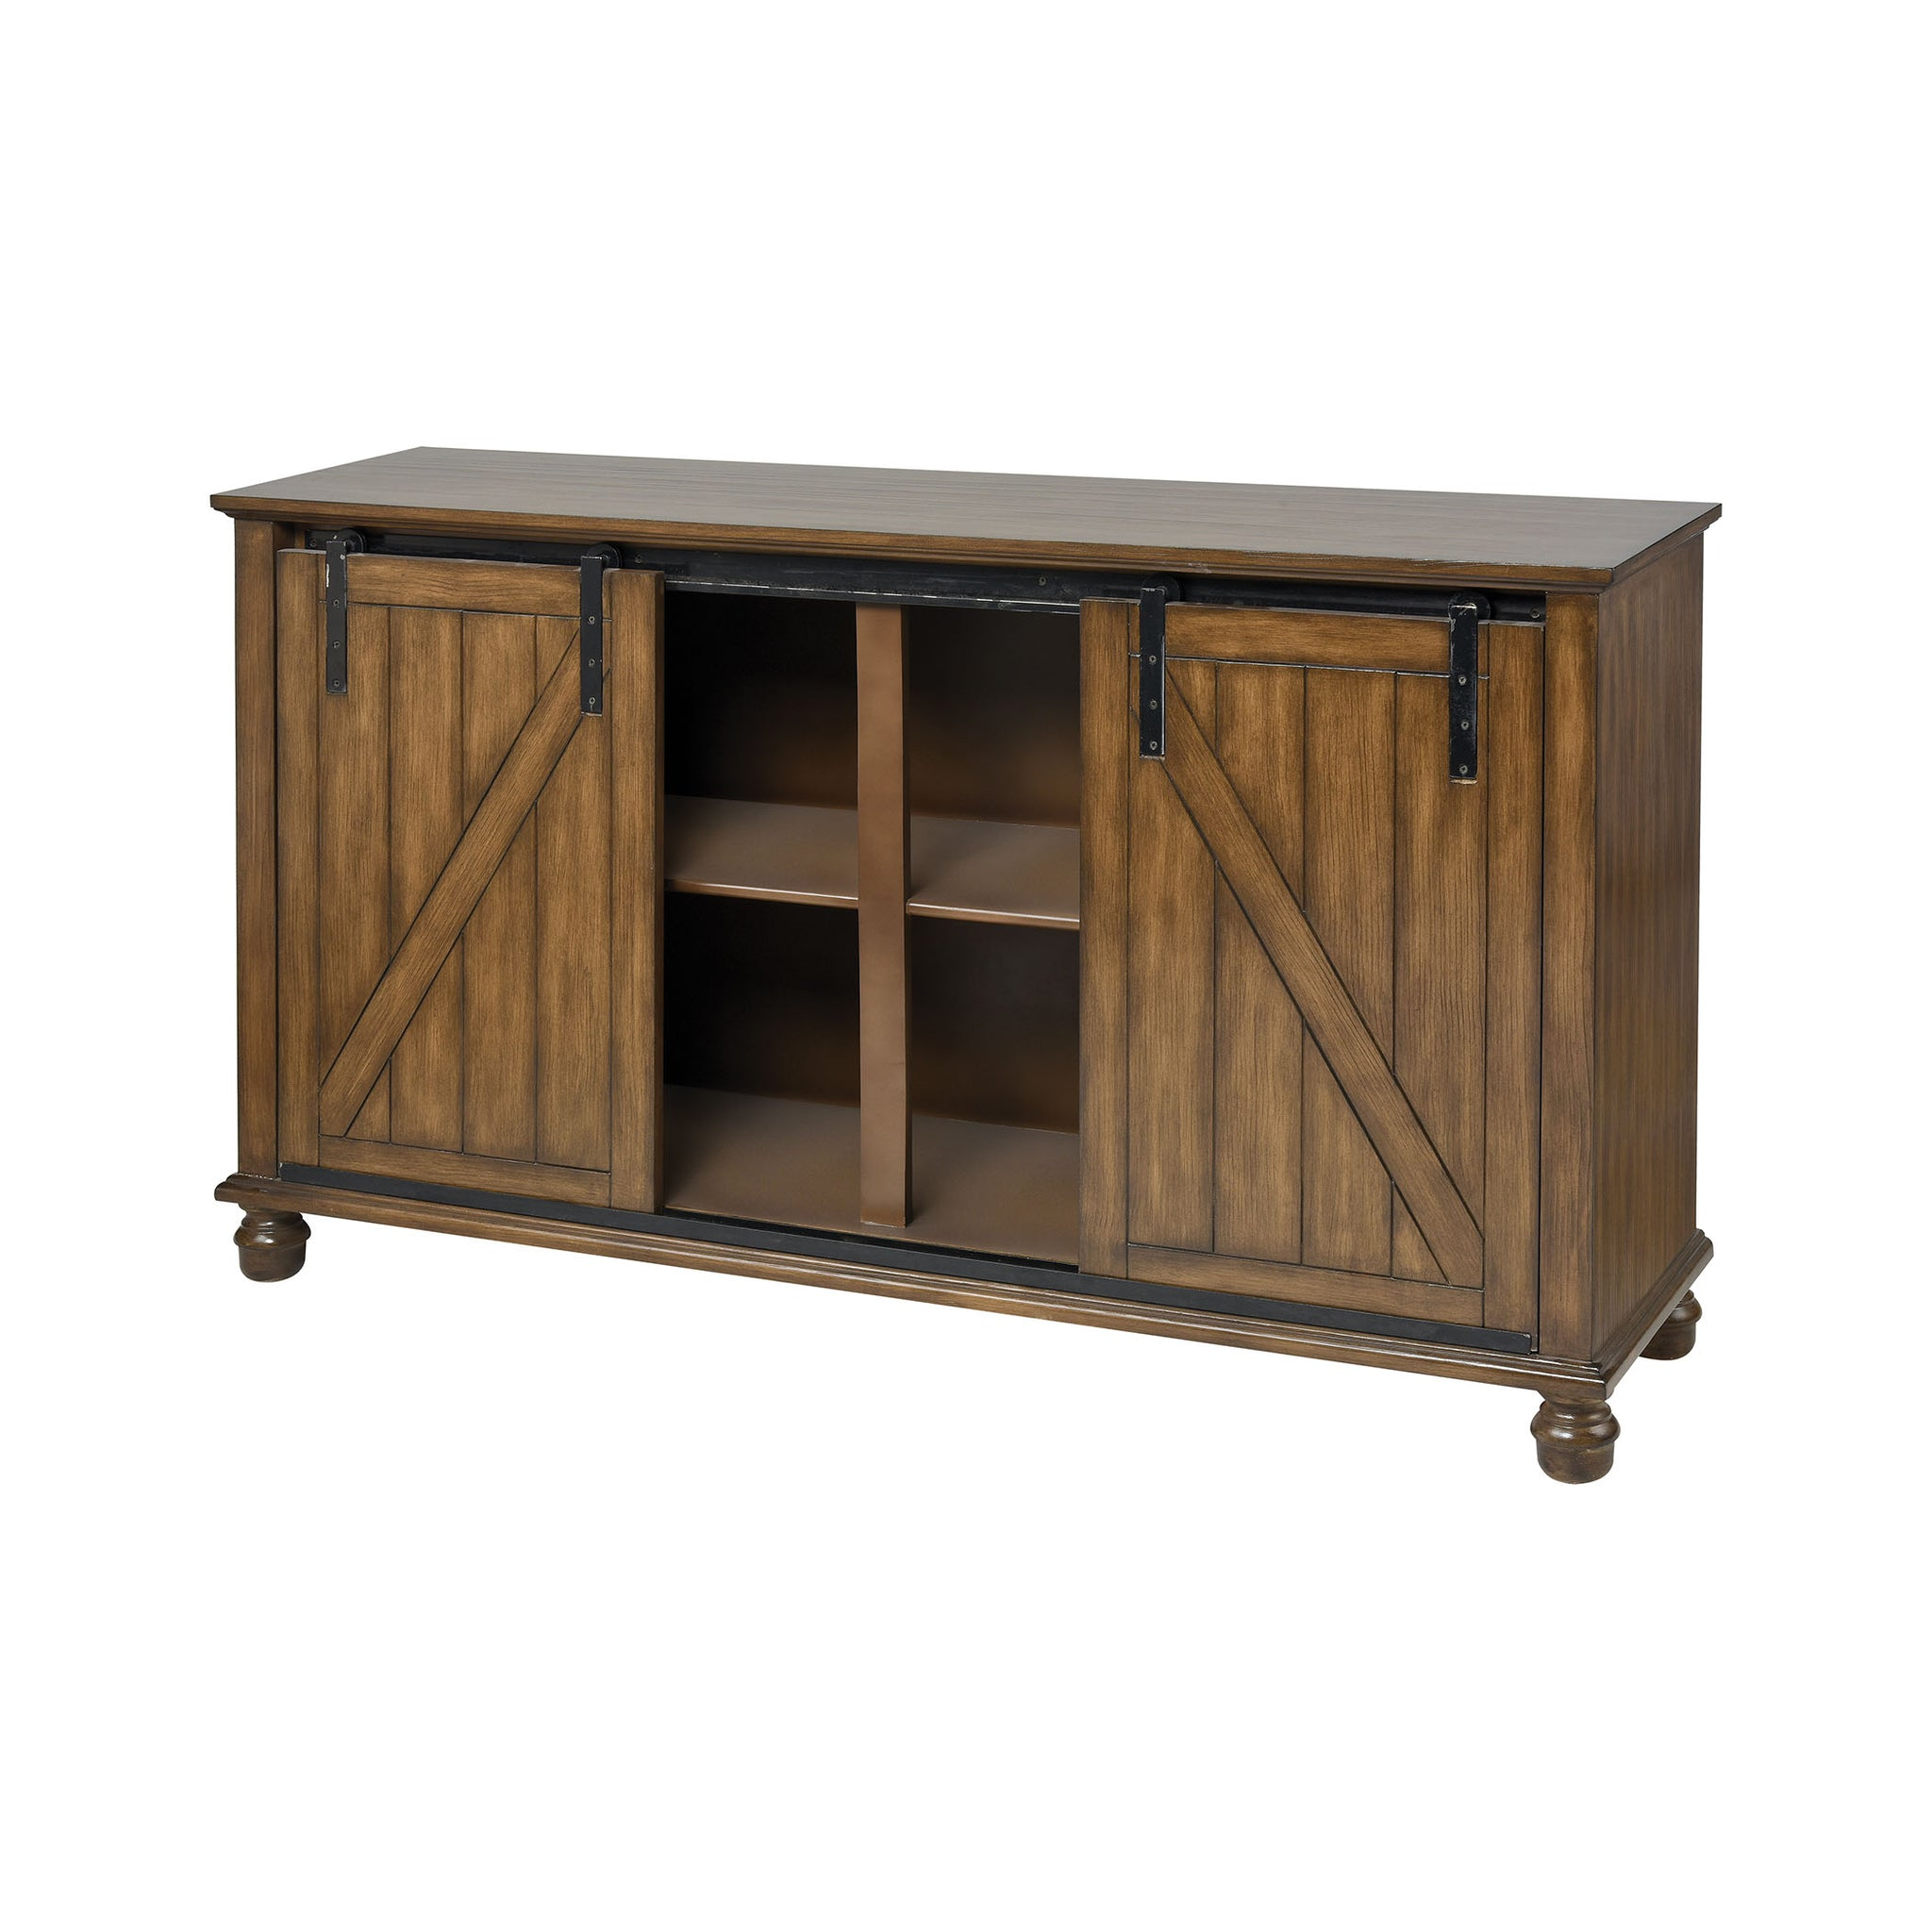 Garrick Farmhouse Cherry Wood Stain Cabinet